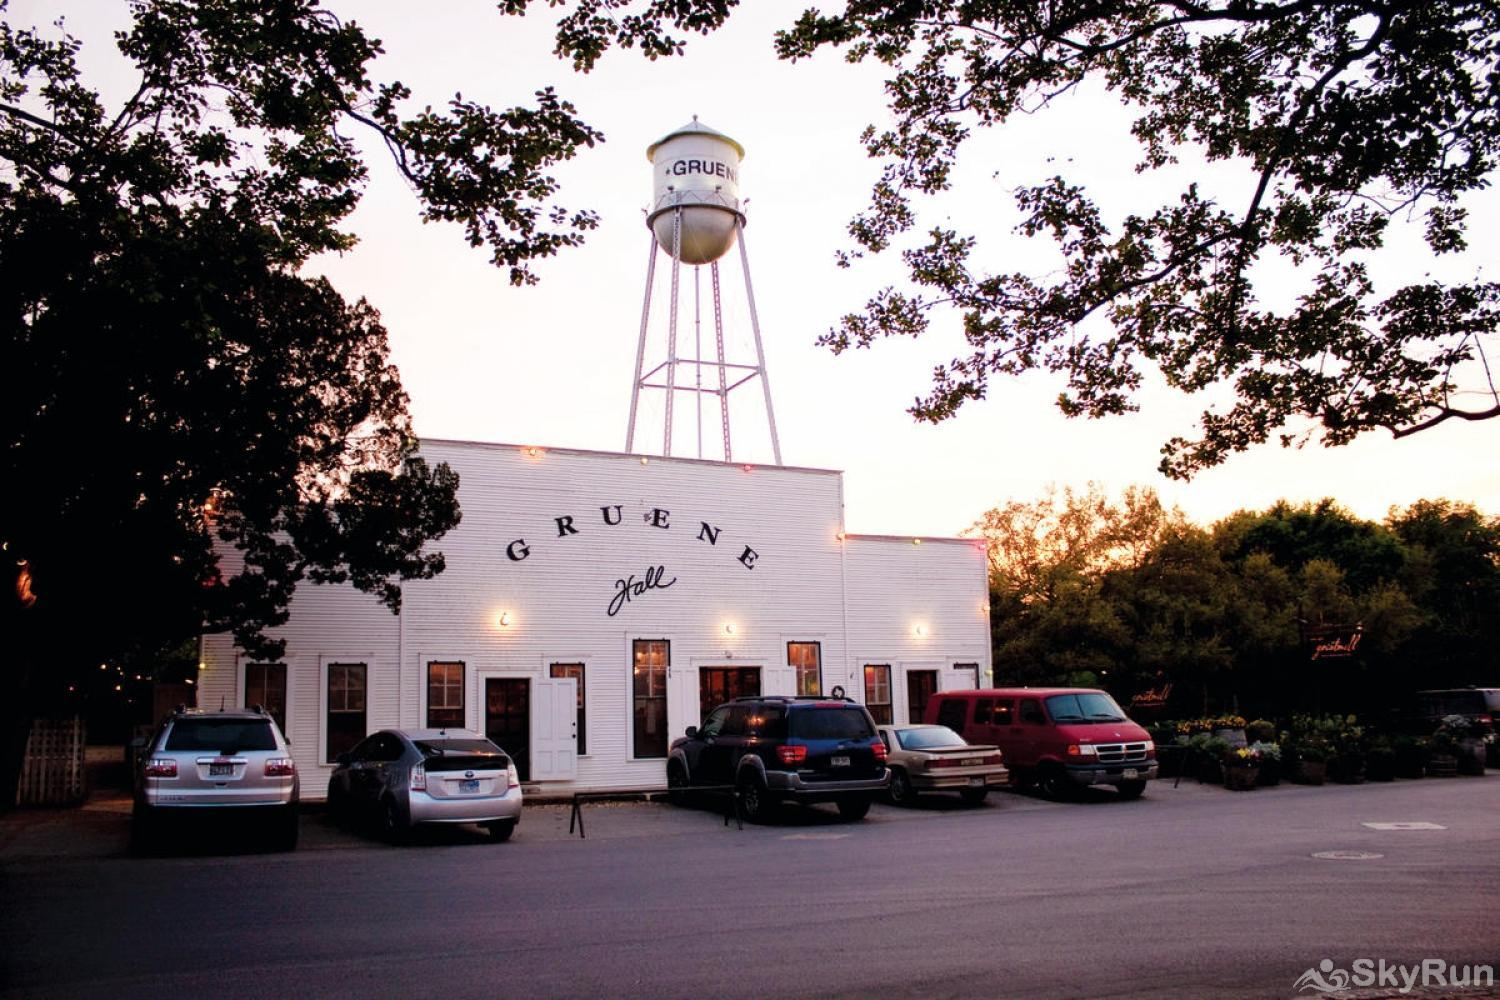 BELLA'S COVE Gruene Hall in nearby New Braunfels